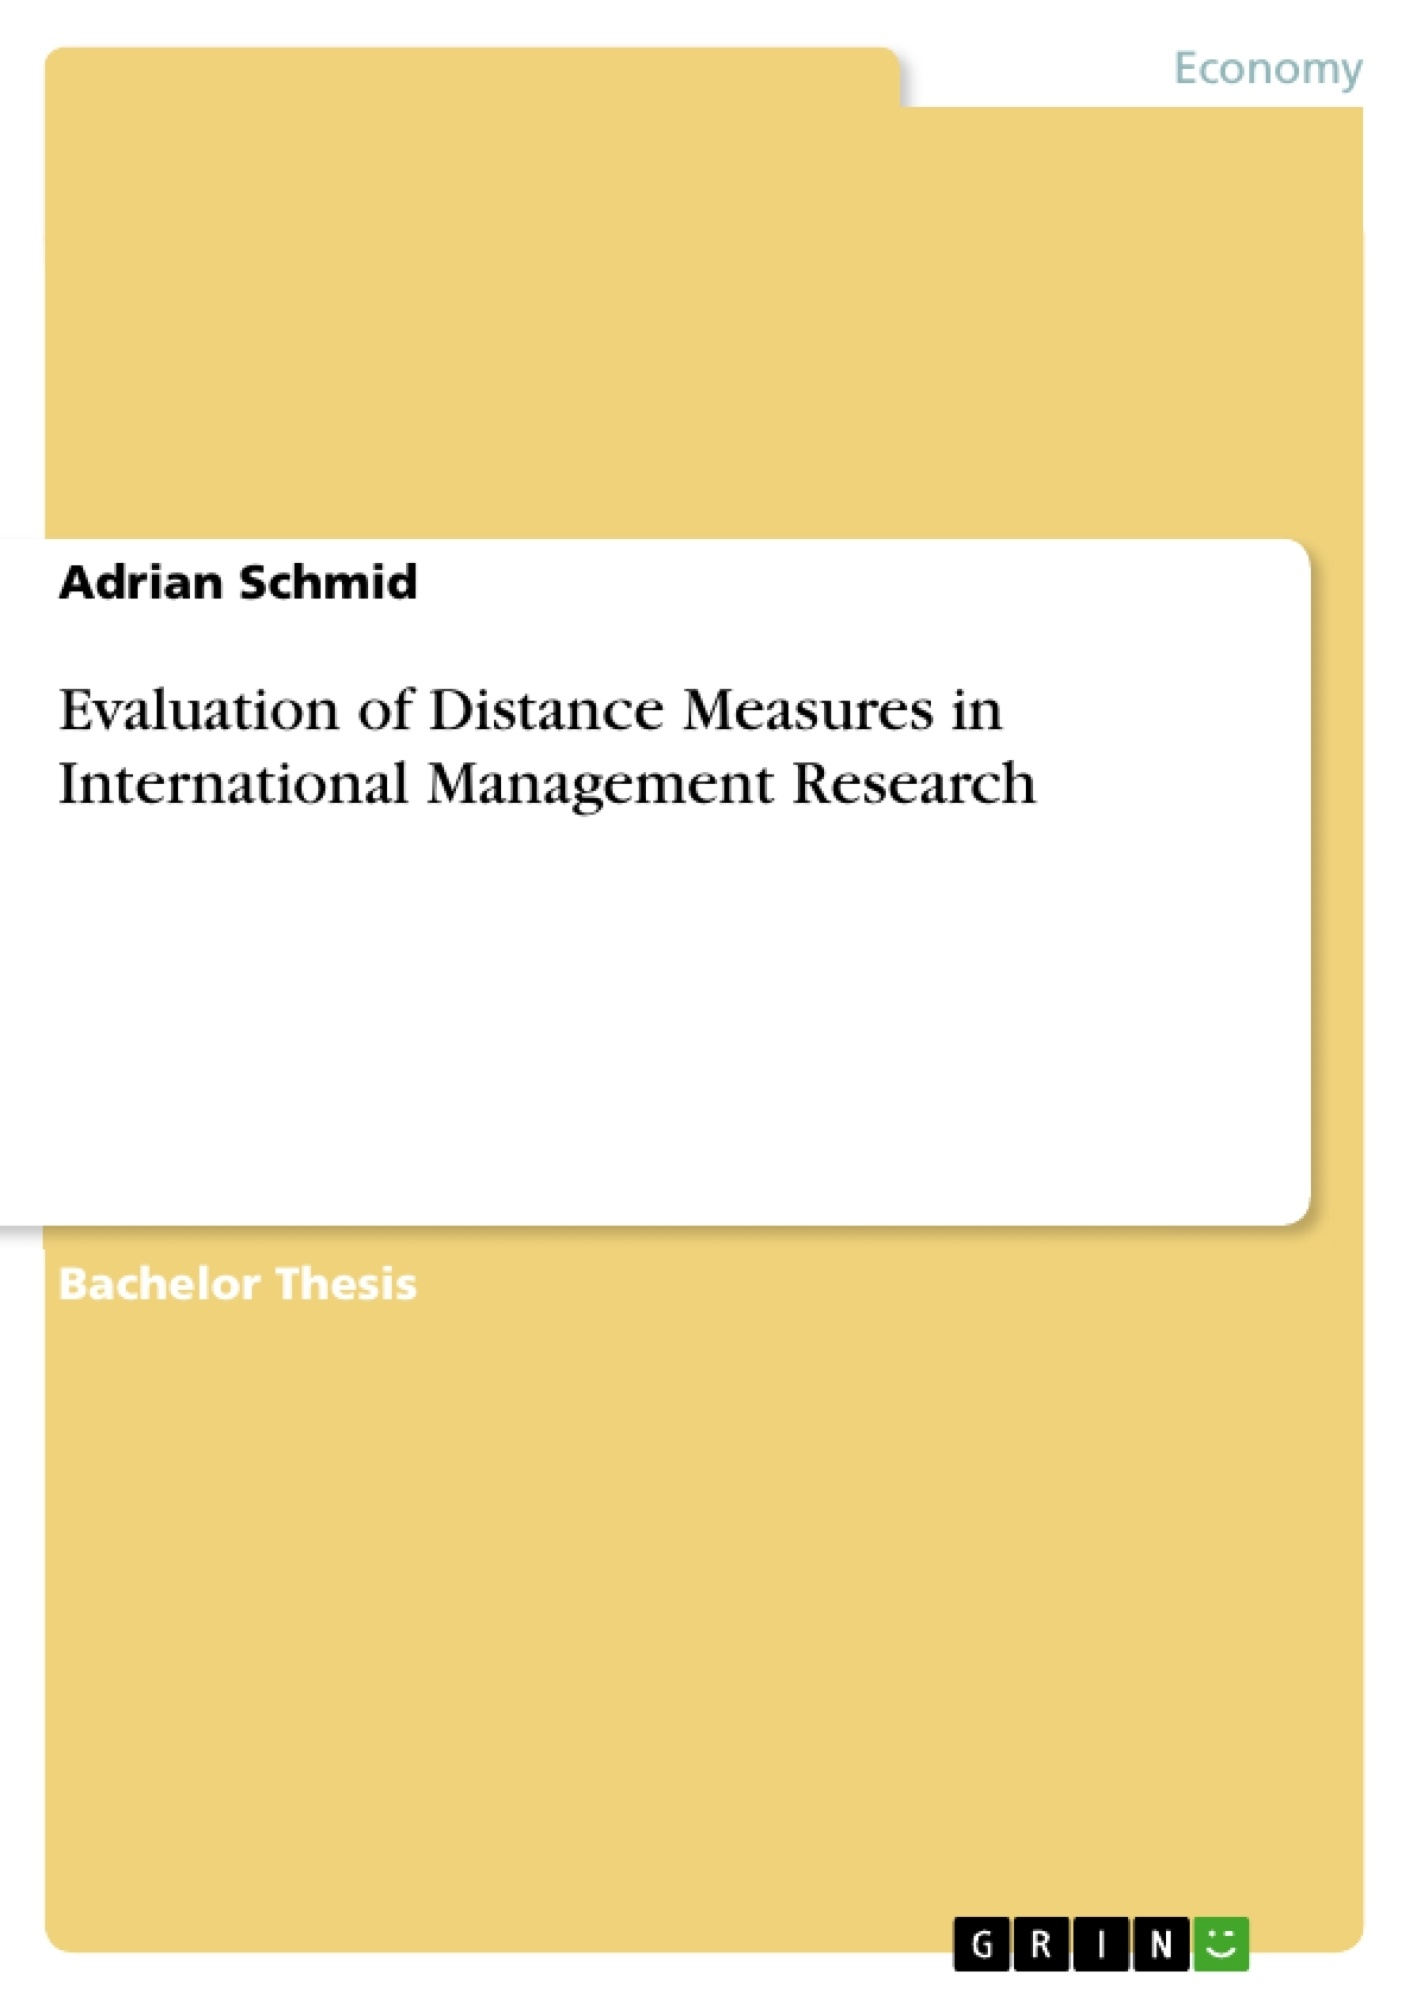 Title: Evaluation of Distance Measures in International Management Research